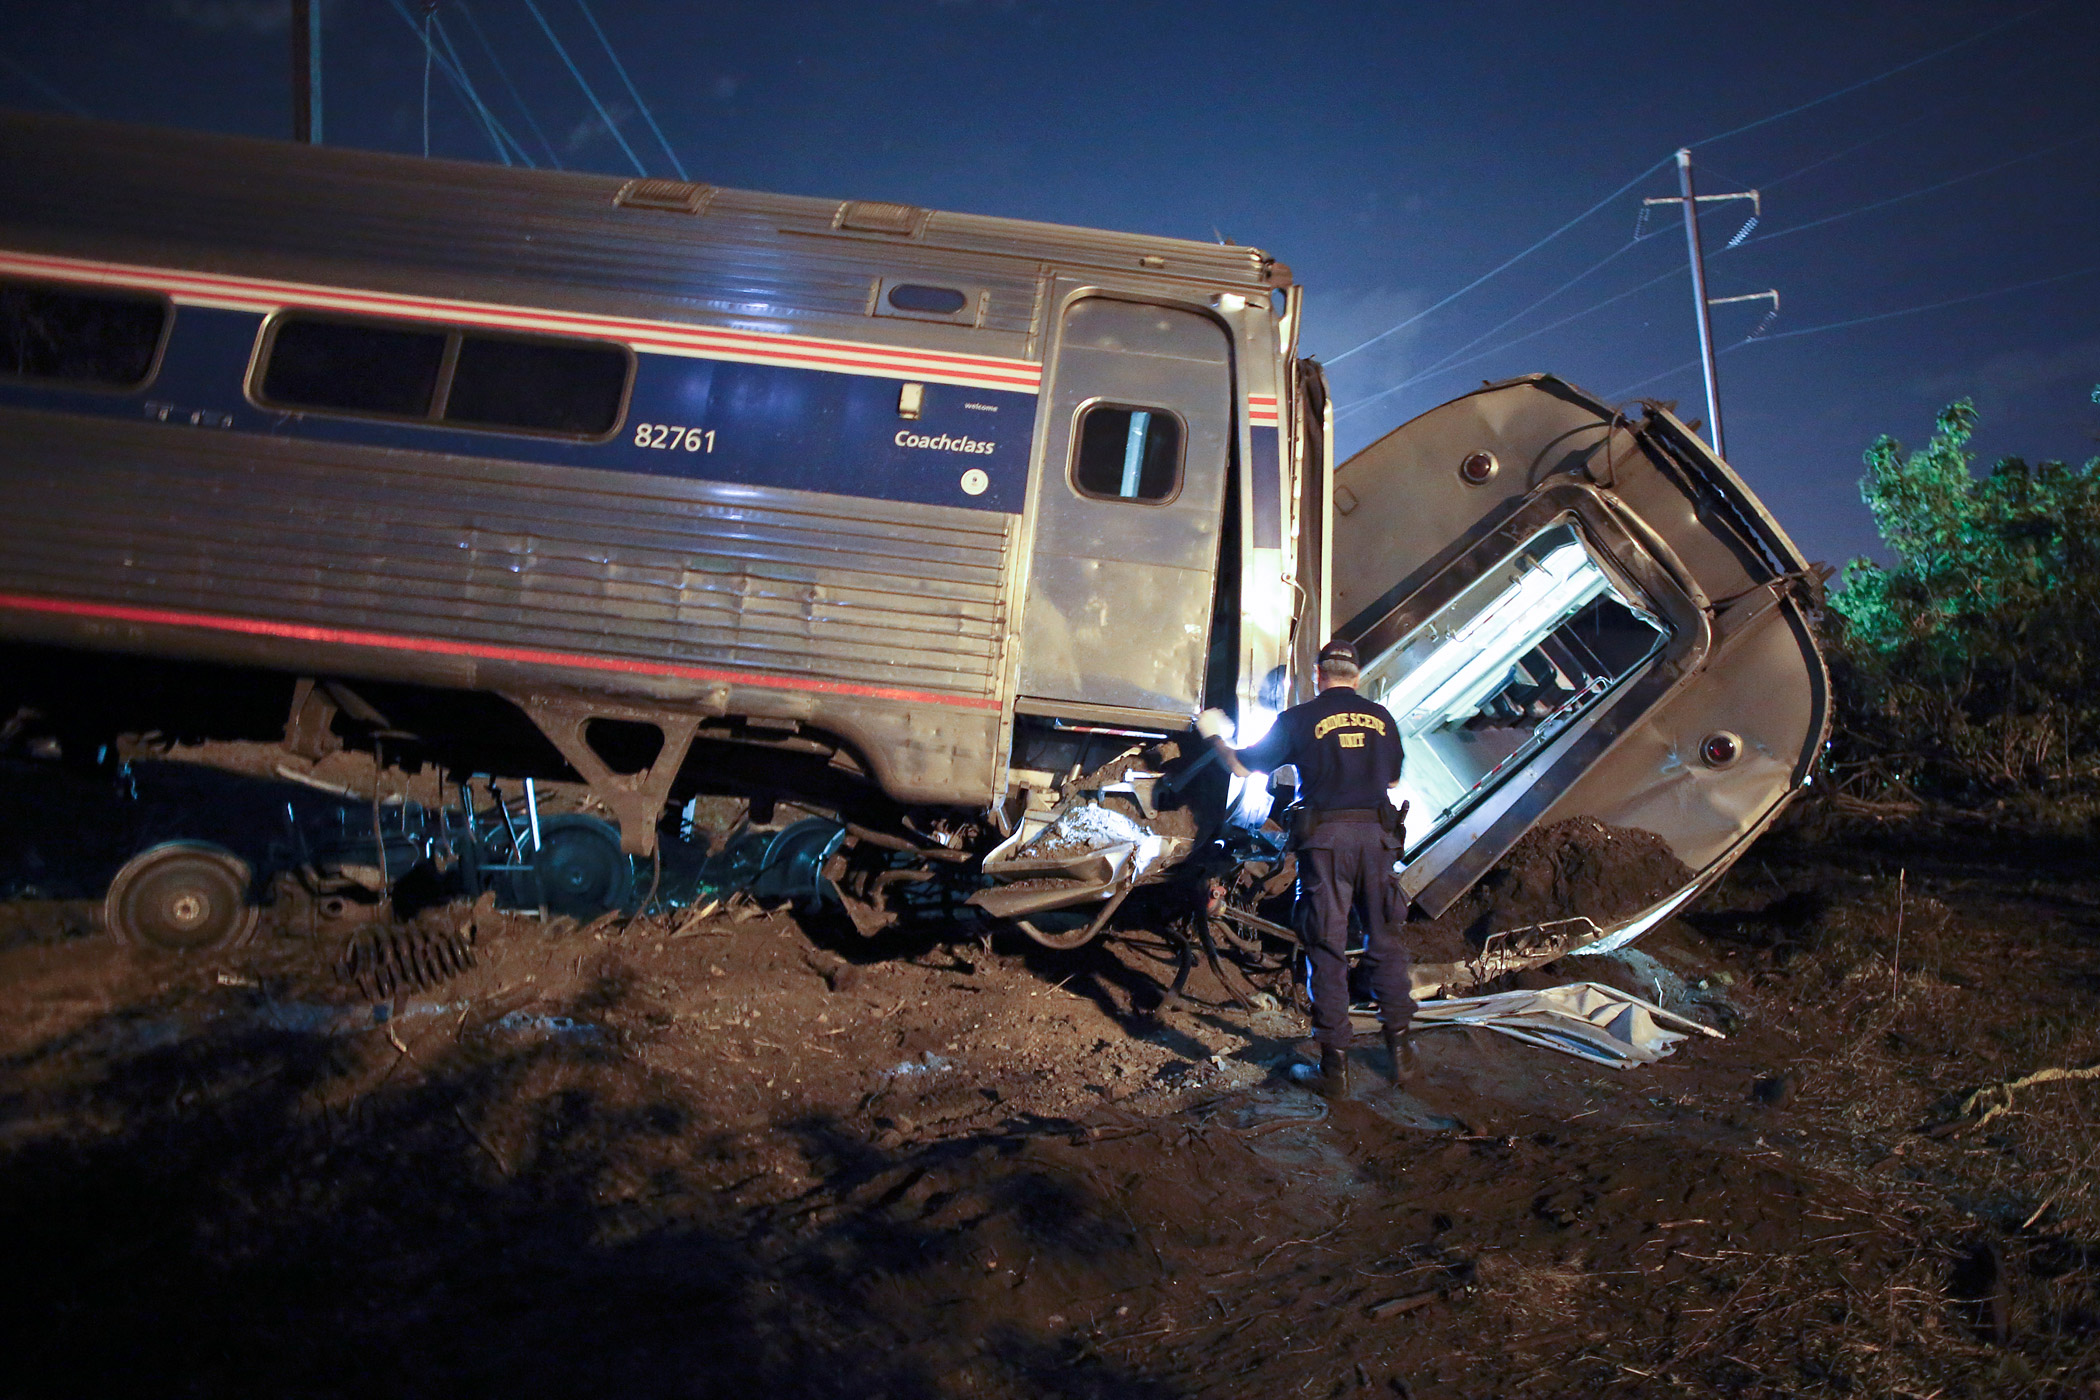 Emergency personnel work at the scene of an Amtrak train wreck on May 12, 2015, in Philadelphia.